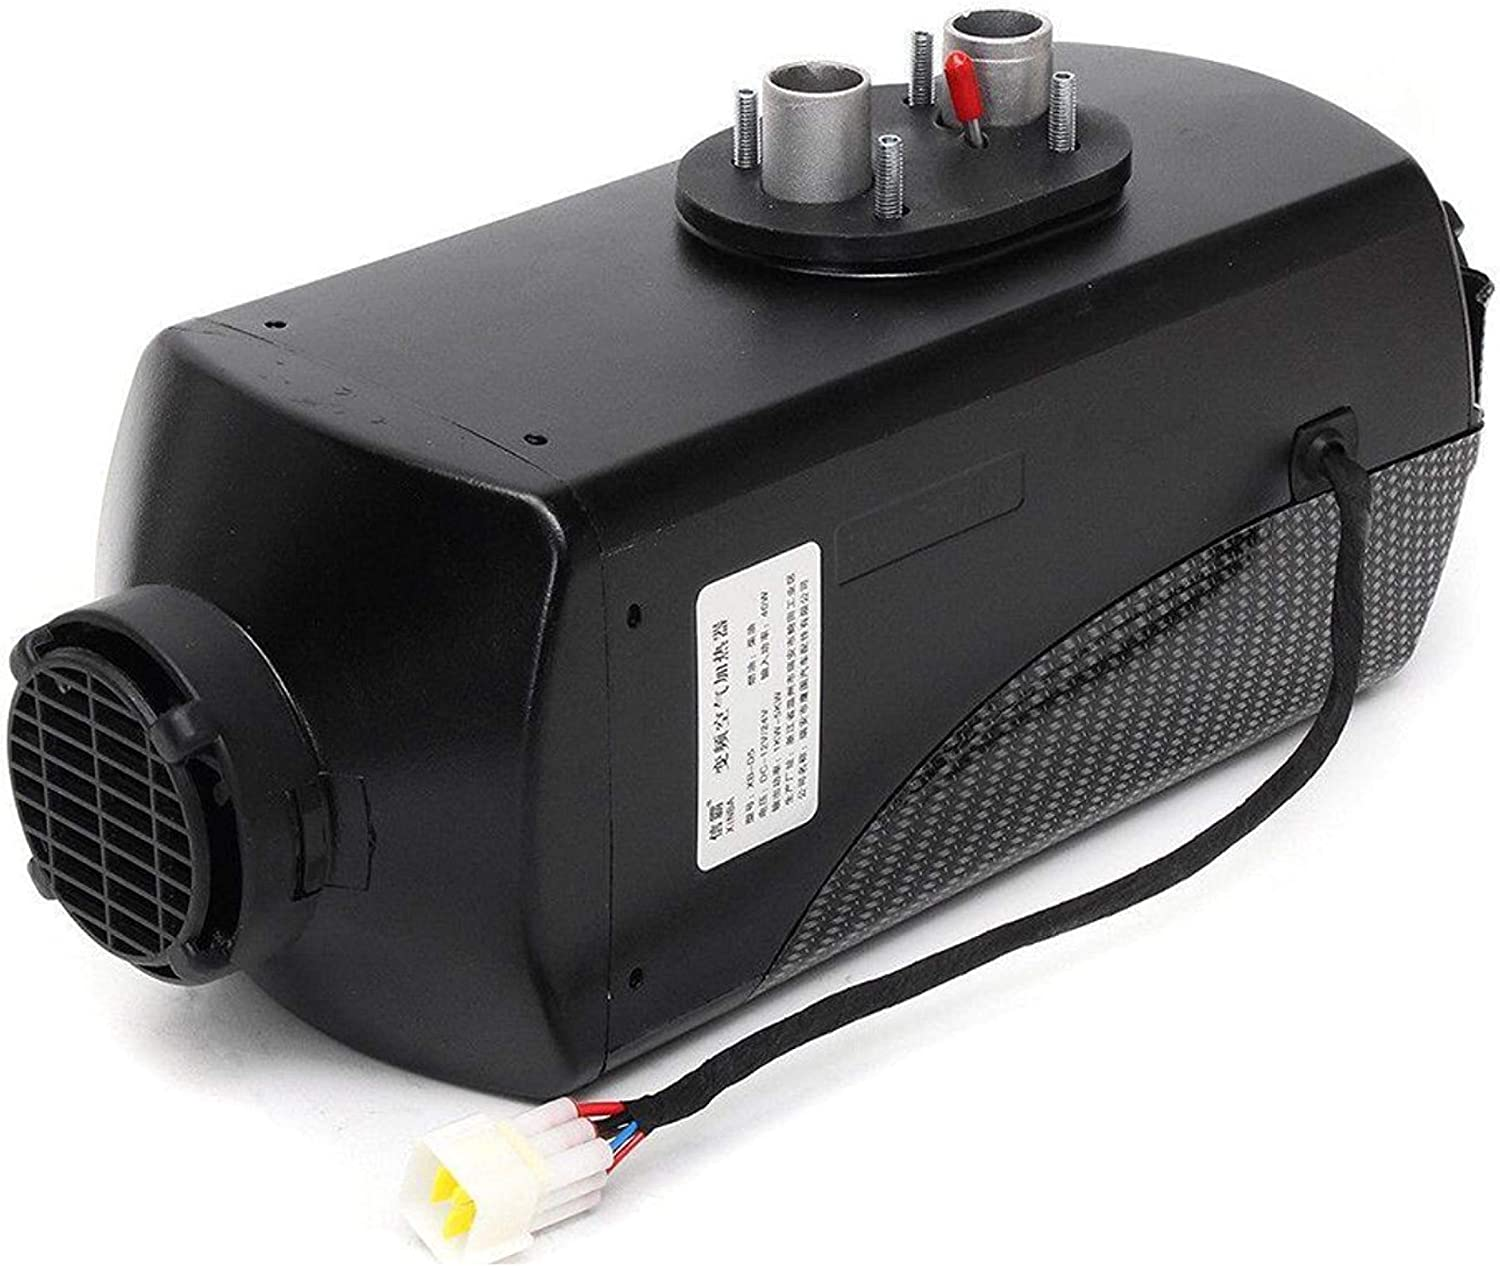 TAUFAOD 12V Air Diesel Heater 5KW Parking Heater Muffler with Remote Control Silencer LCD Thermostat for Truck RV Bus Trailer Motorhome Boats Caravans